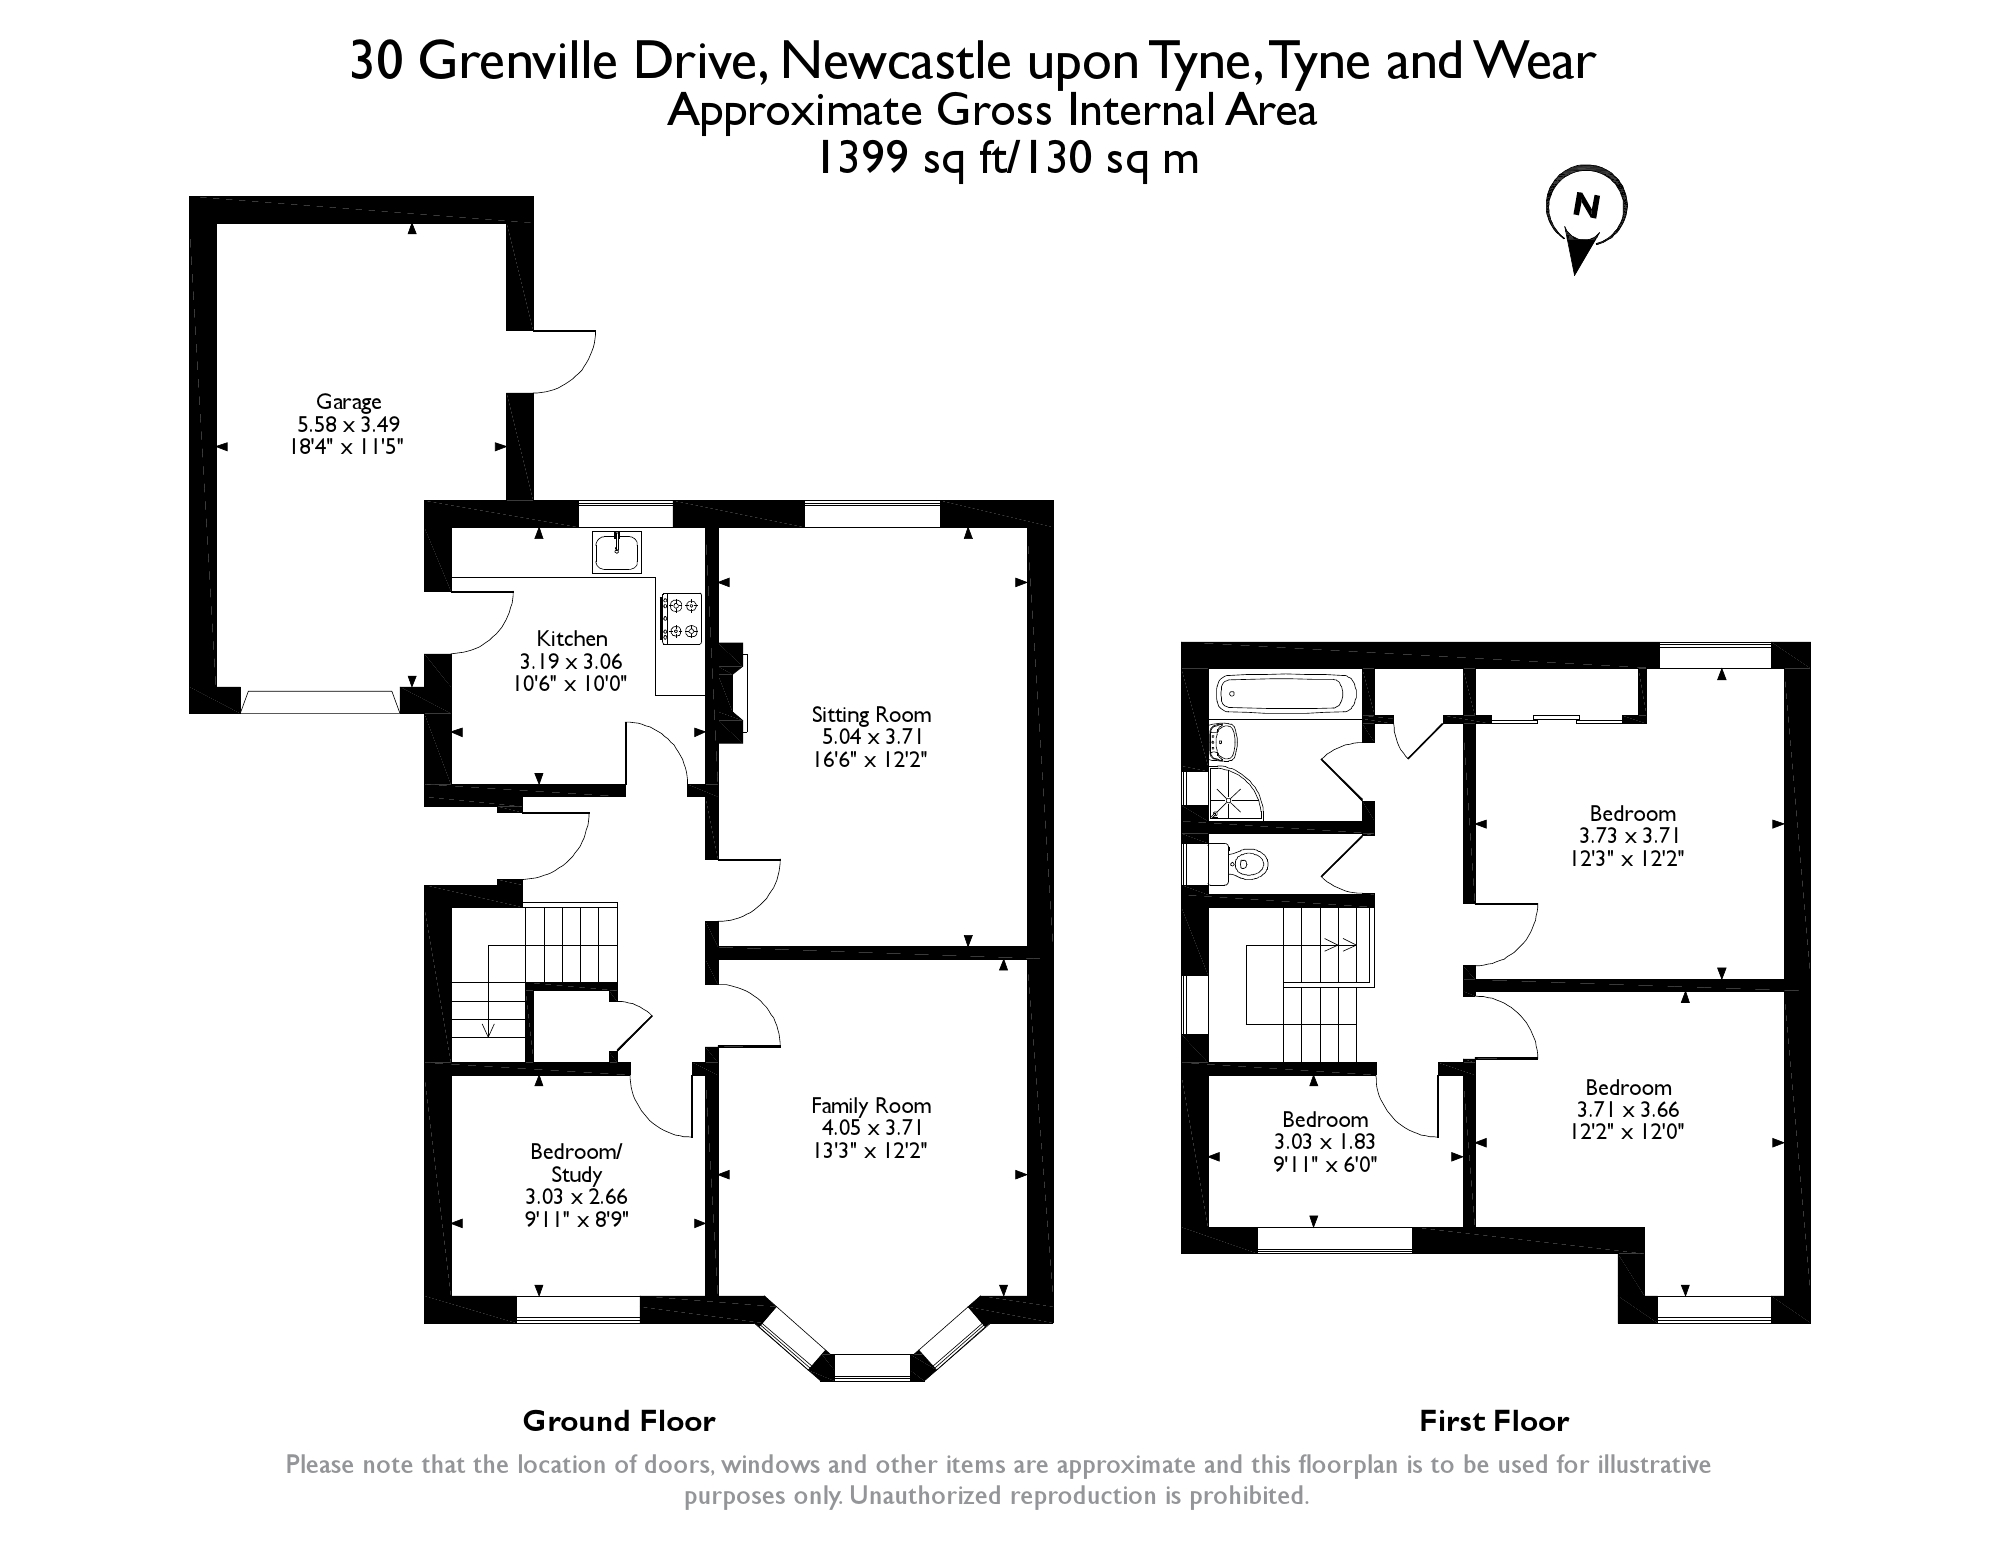 Floorplans for Grenville Drive, Gosforth, Newcastle Upon Tyne, NE3